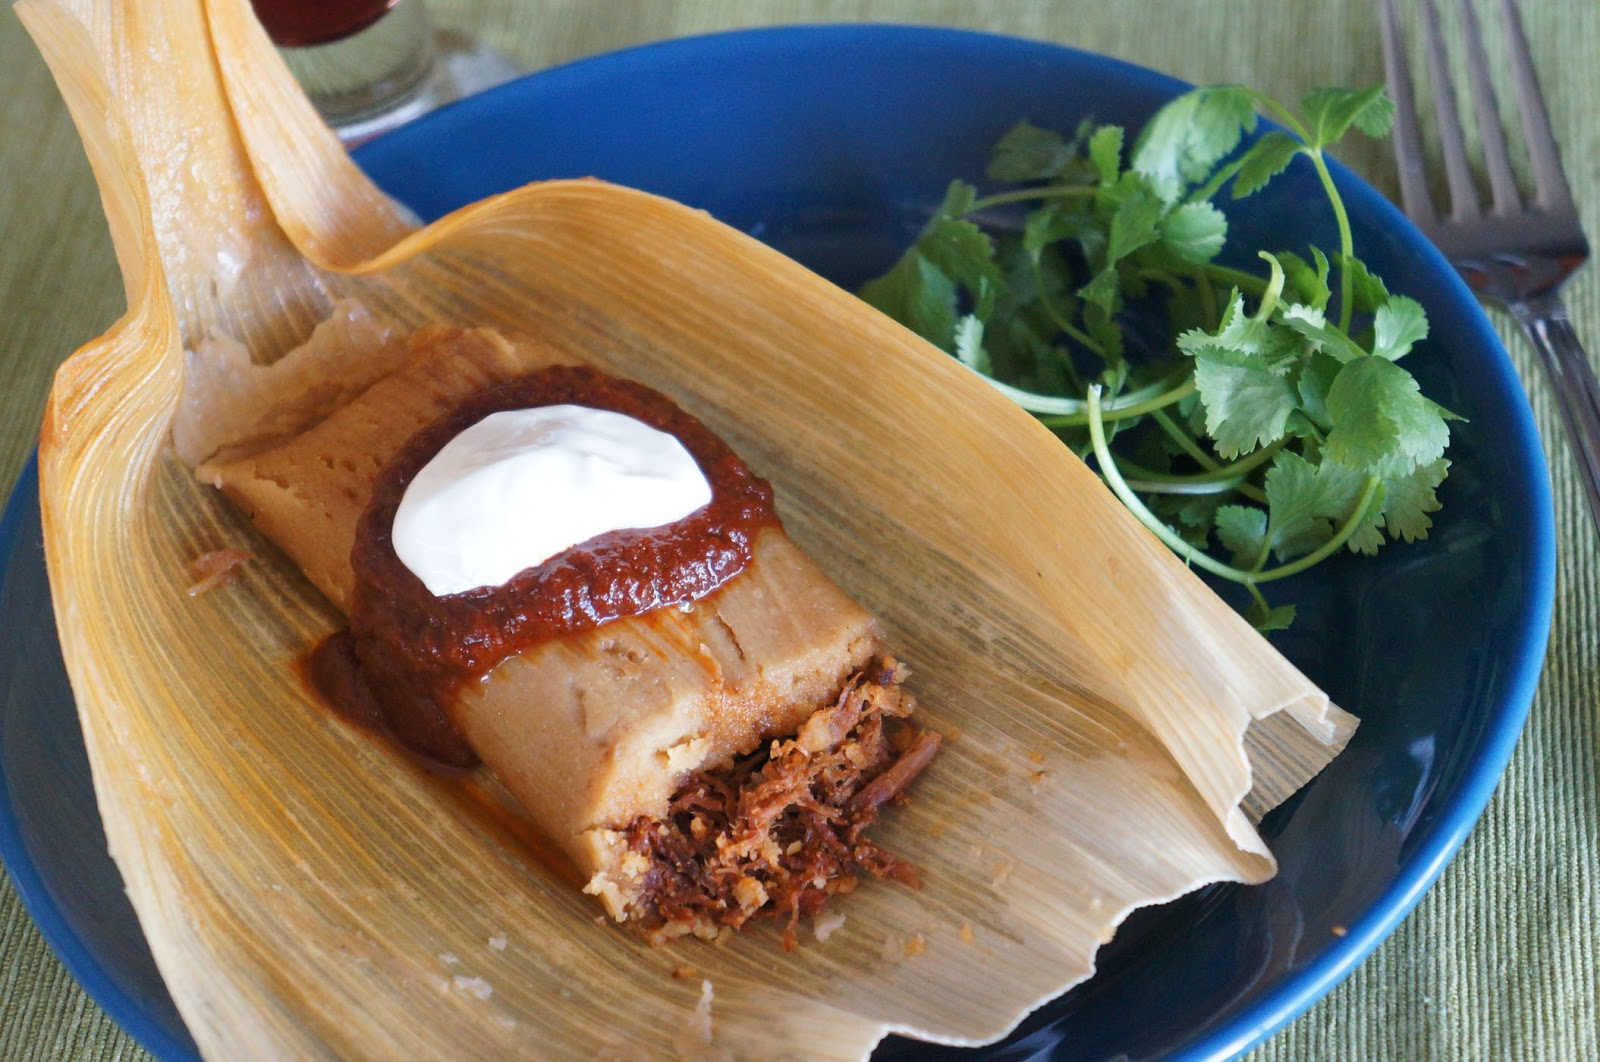 informative paper pork tamales This recipe and video shows how to make tamales with several thanks for such an informative after making tamales with your pork filling several.